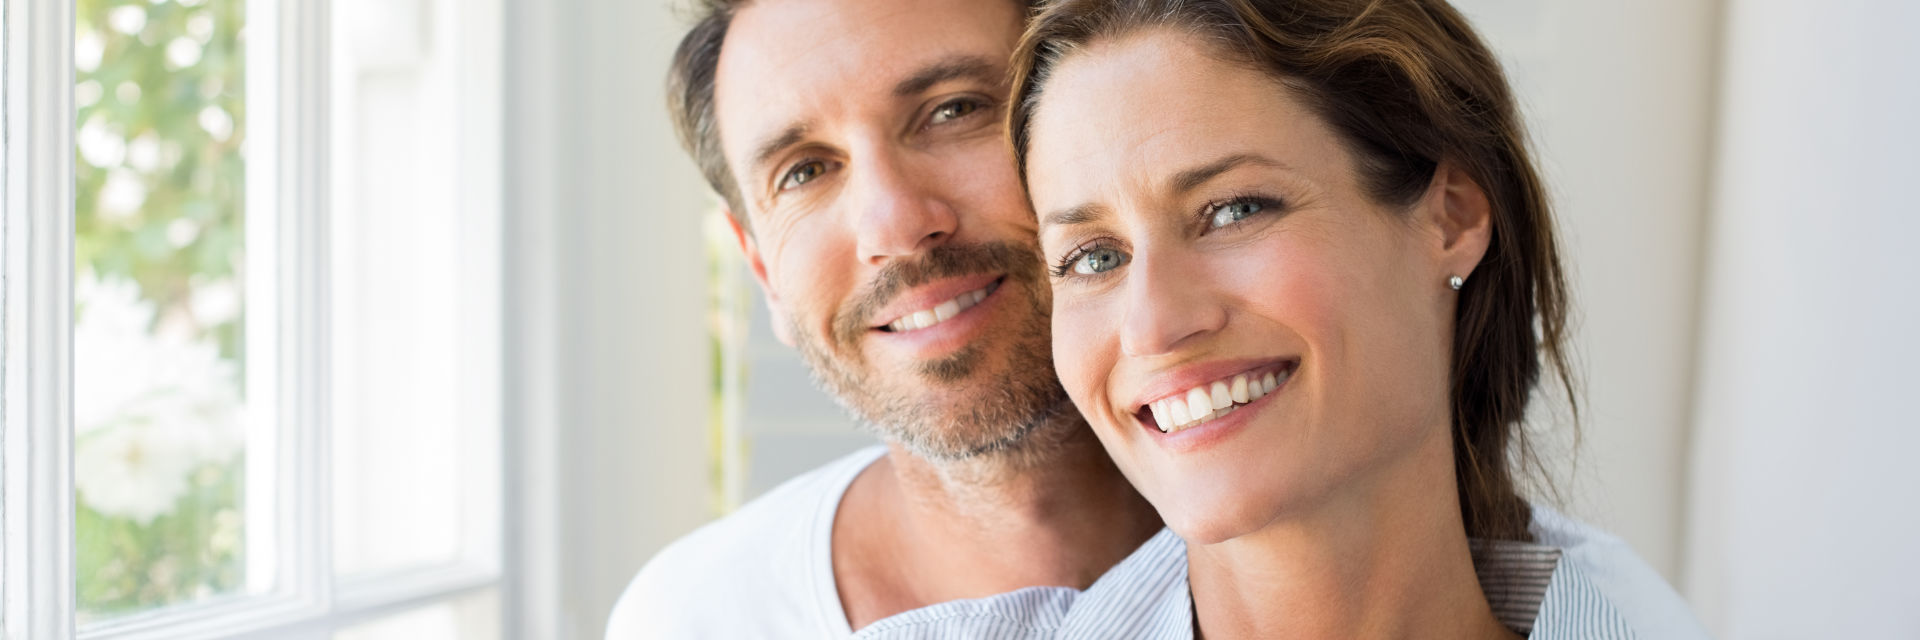 Relaxed middle-aged couple showing nice teeth in their smiles.